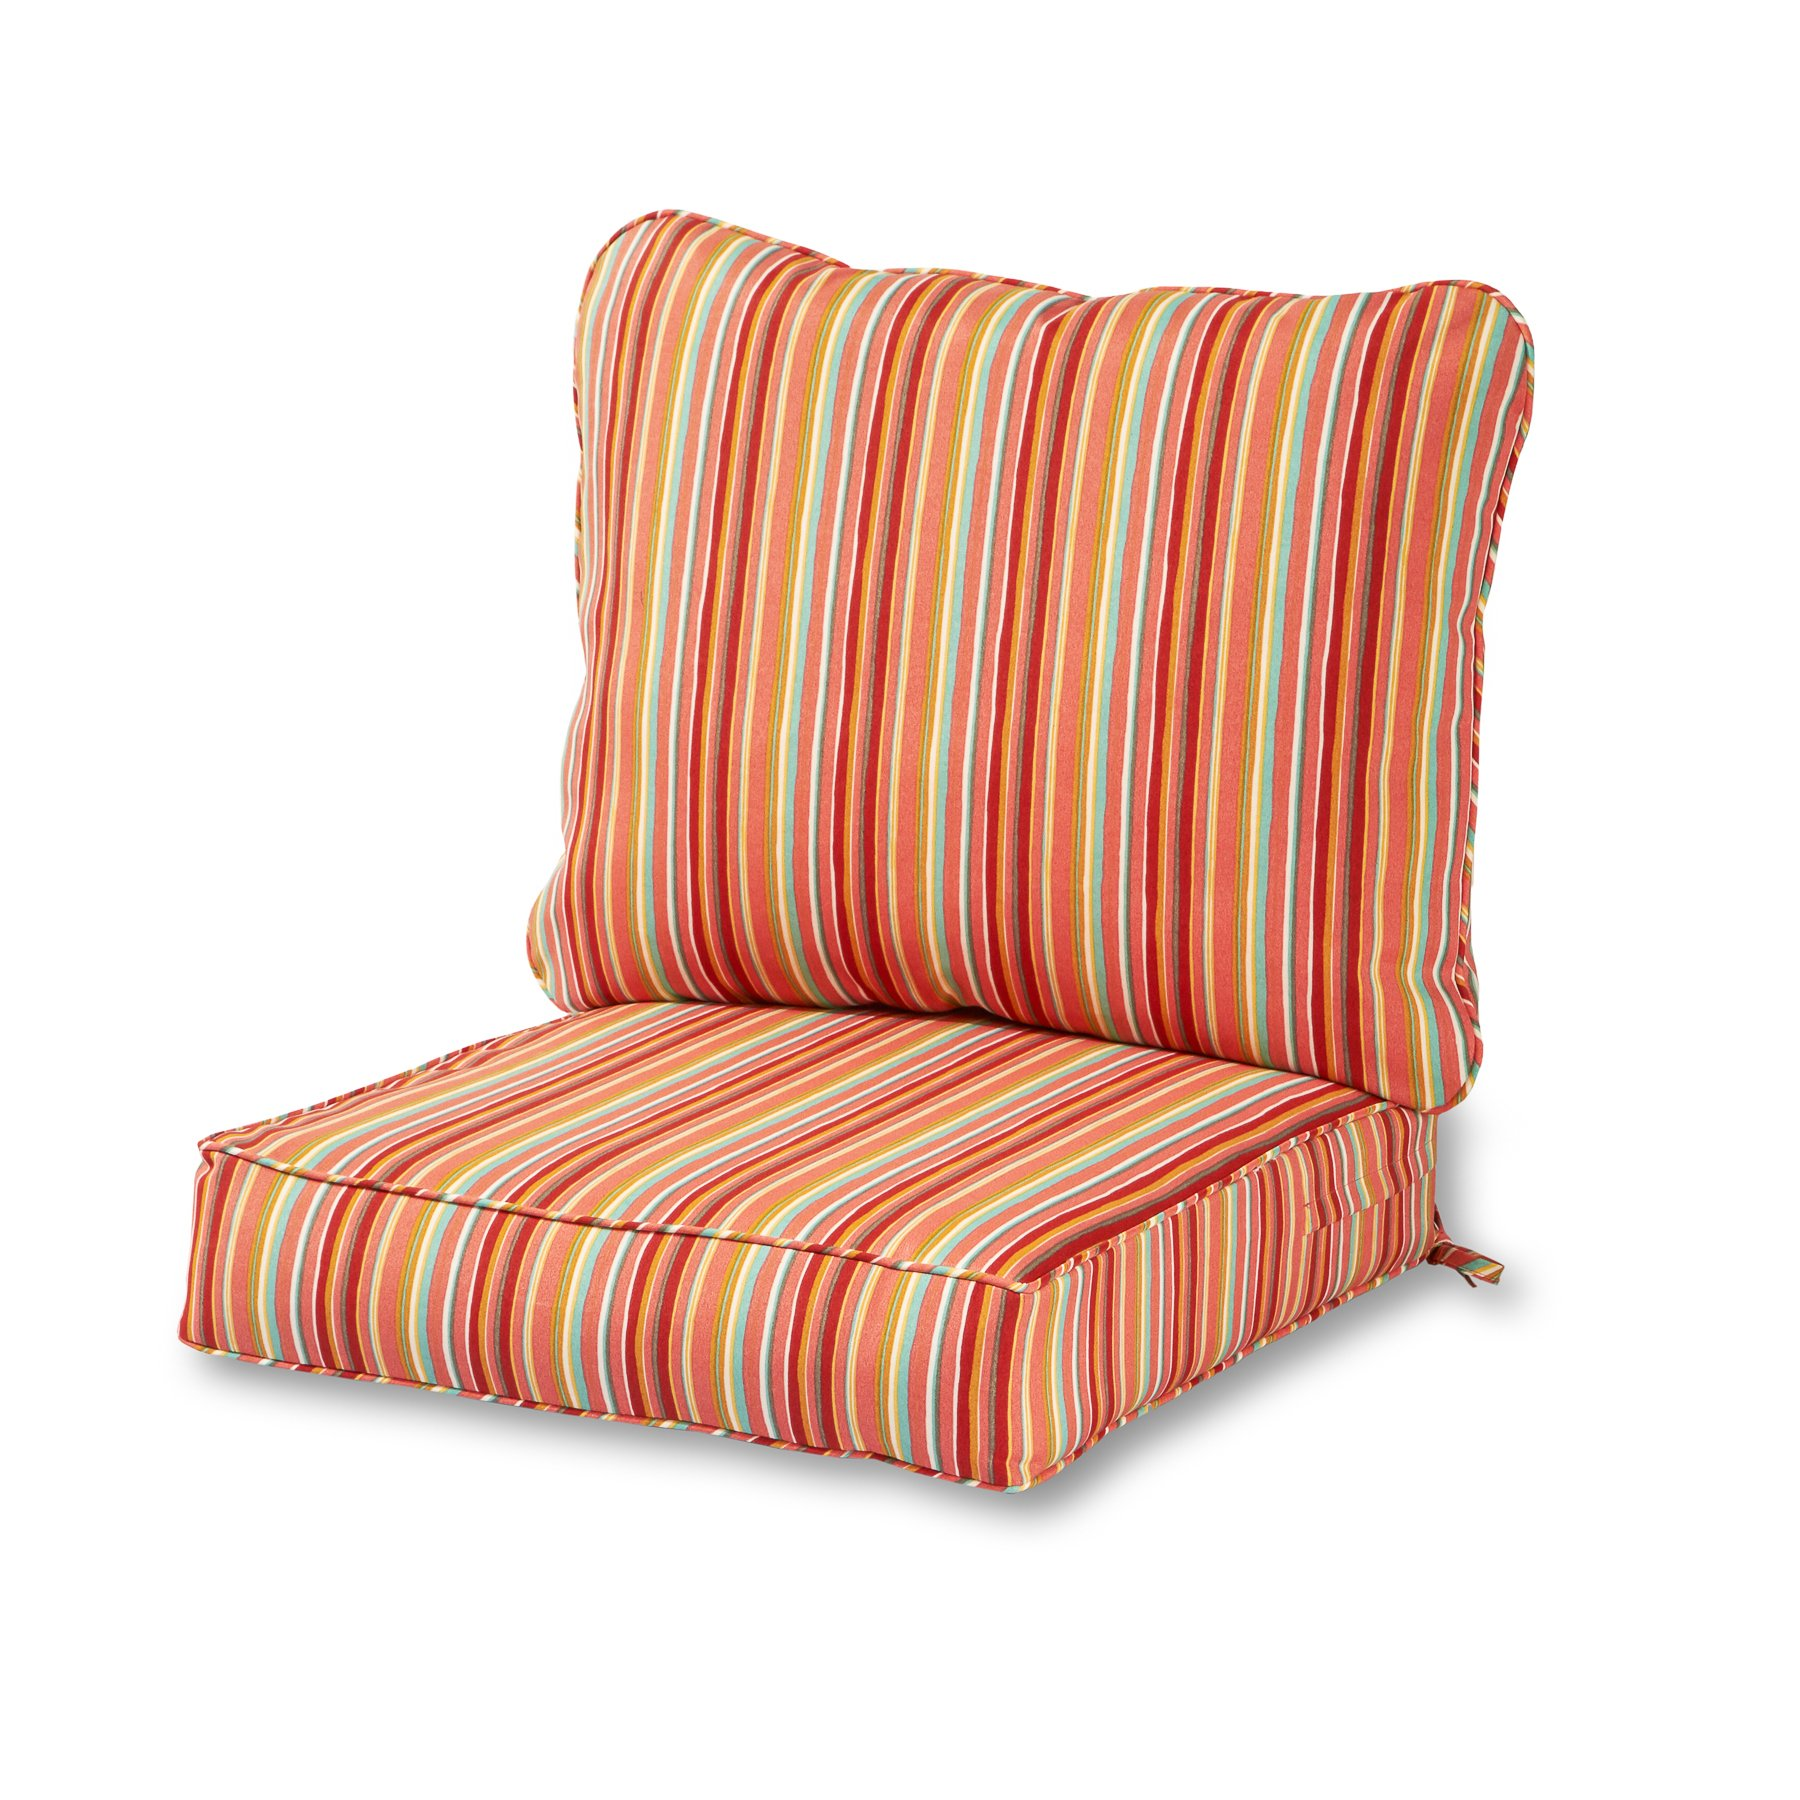 Greendale Home Fashions Deep Seat Cushion Set in Coastal Stripe, Watermelon by Greendale Home Fashions (Image #1)